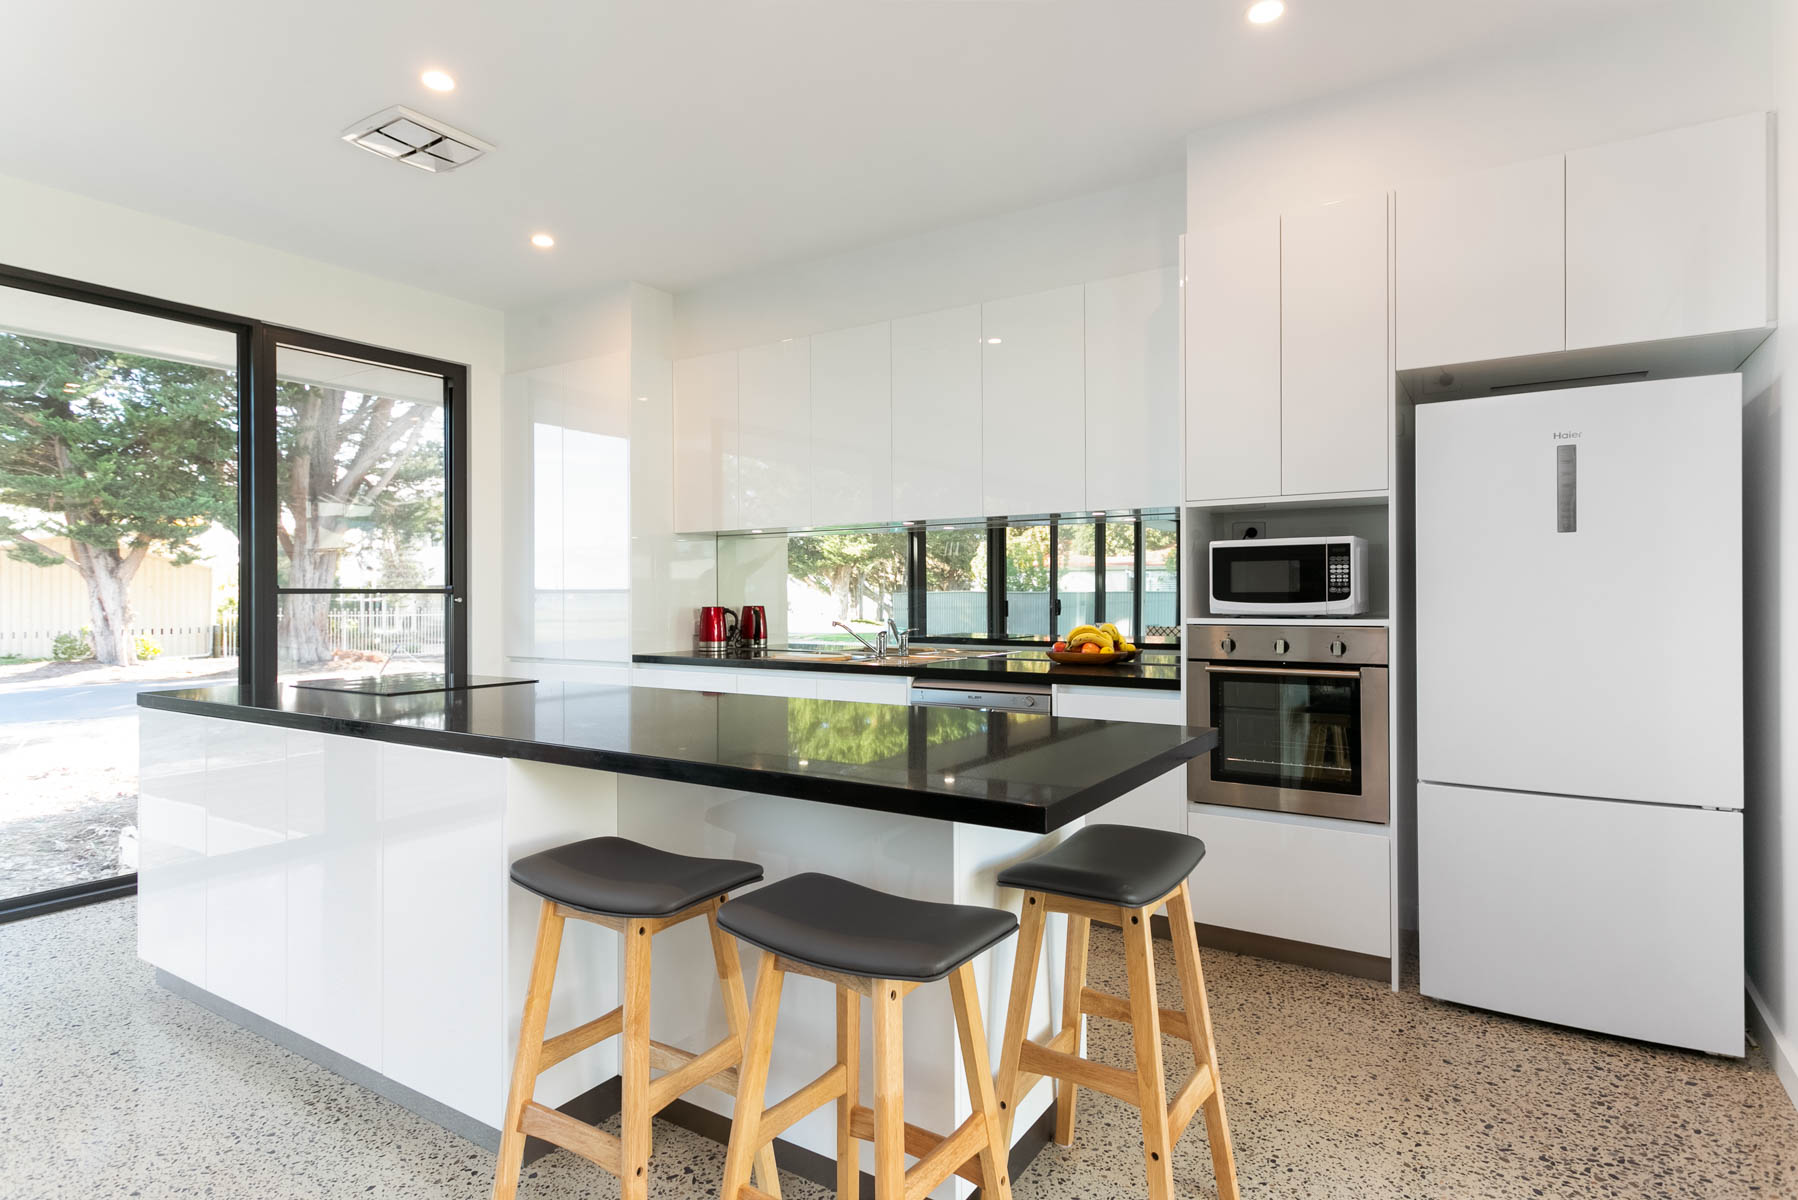 New Home, Custom Home, Family Home, Design, Builders, Award Winning, Single Storey, Goolwa, Fleurieu, Black and white kitchen, mirror splashback, large windows